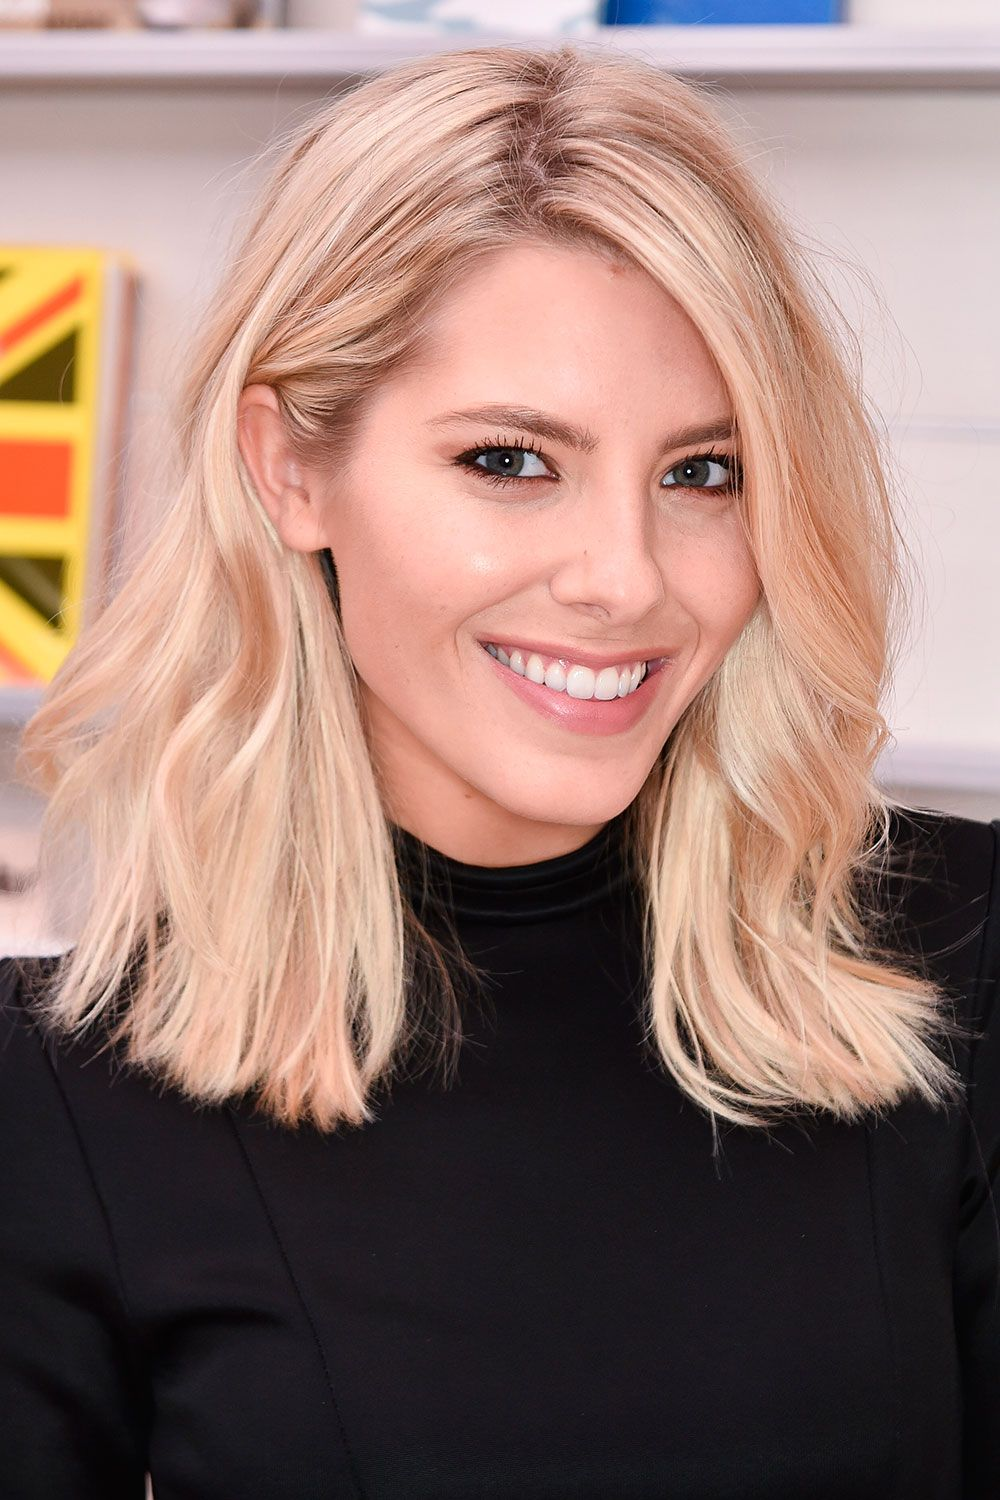 Mid Length Hairstyles All The Hair Inspo